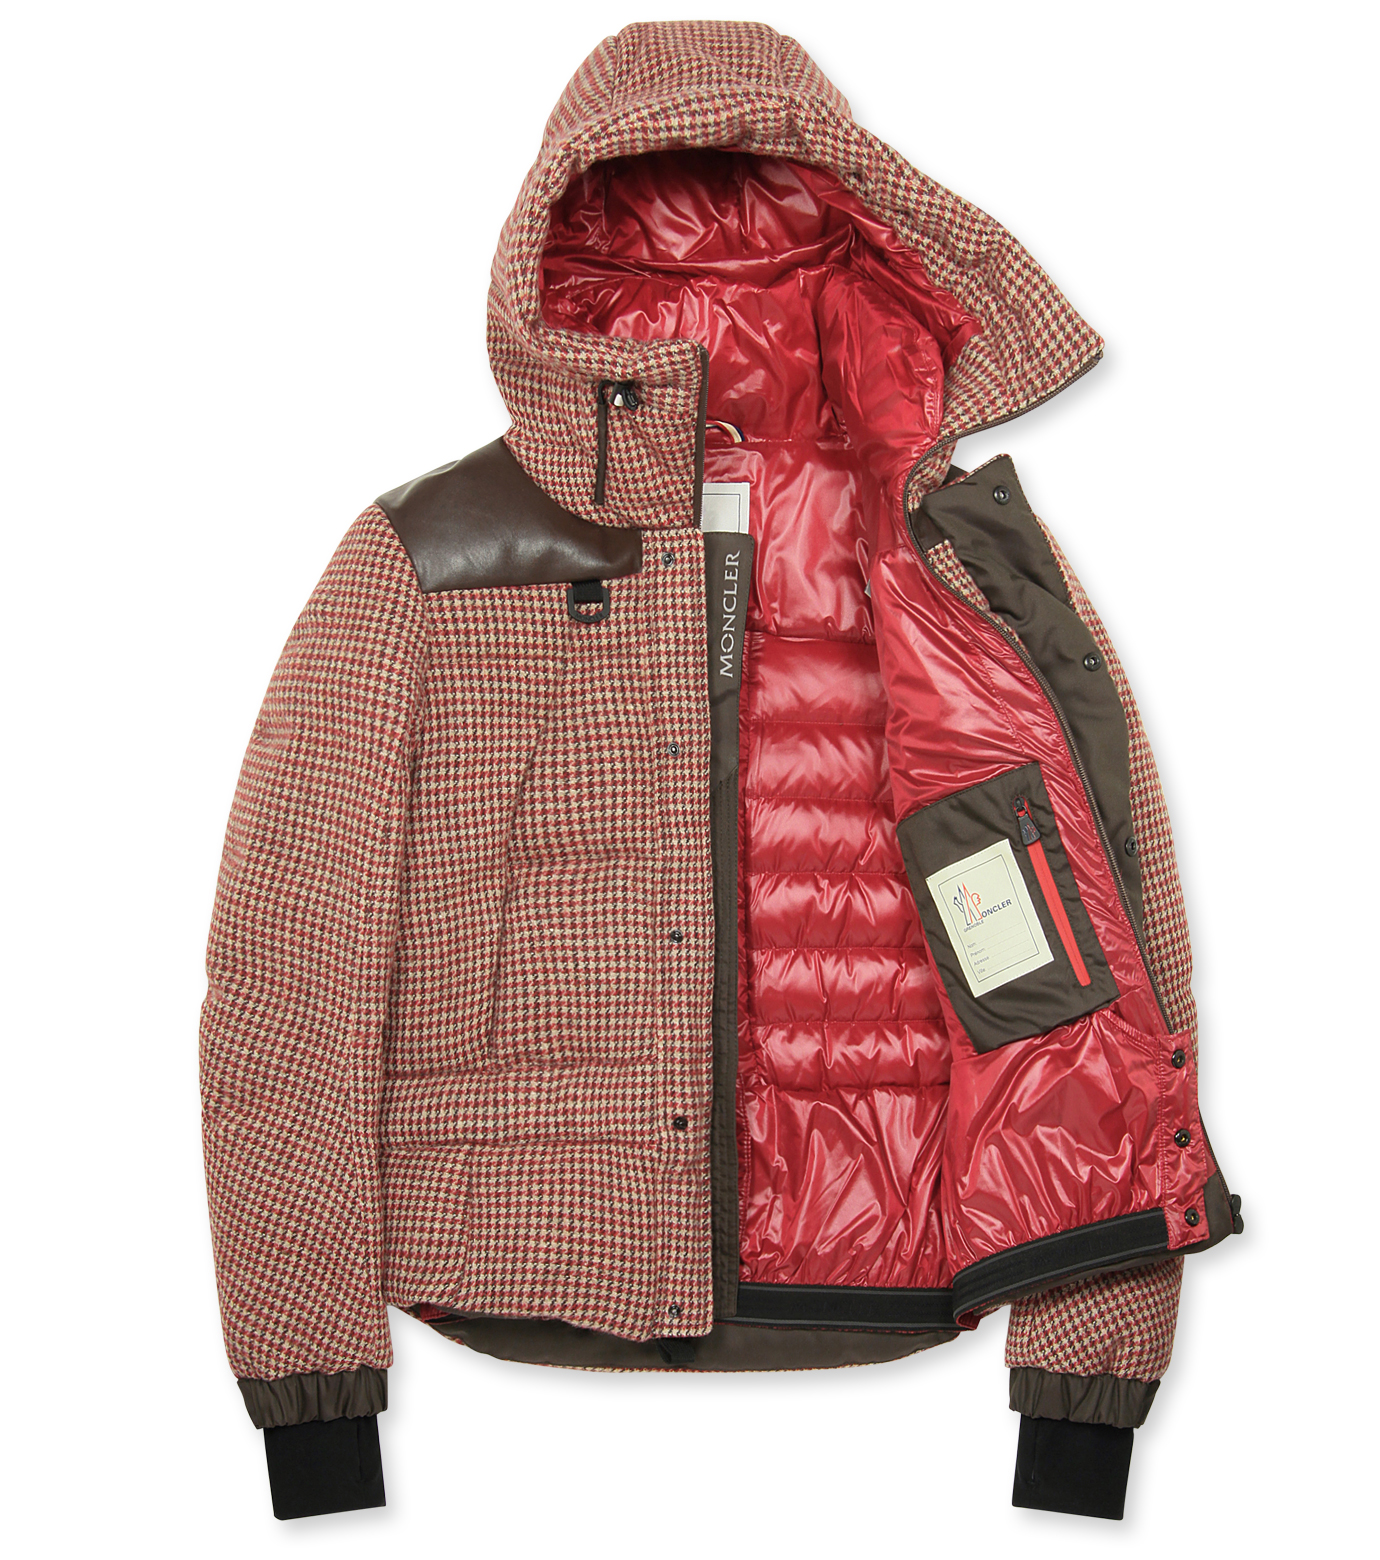 Moncler Grenoble(モンクレールグルノーブル)のCheck down-RED-41911-85-62 拡大詳細画像2